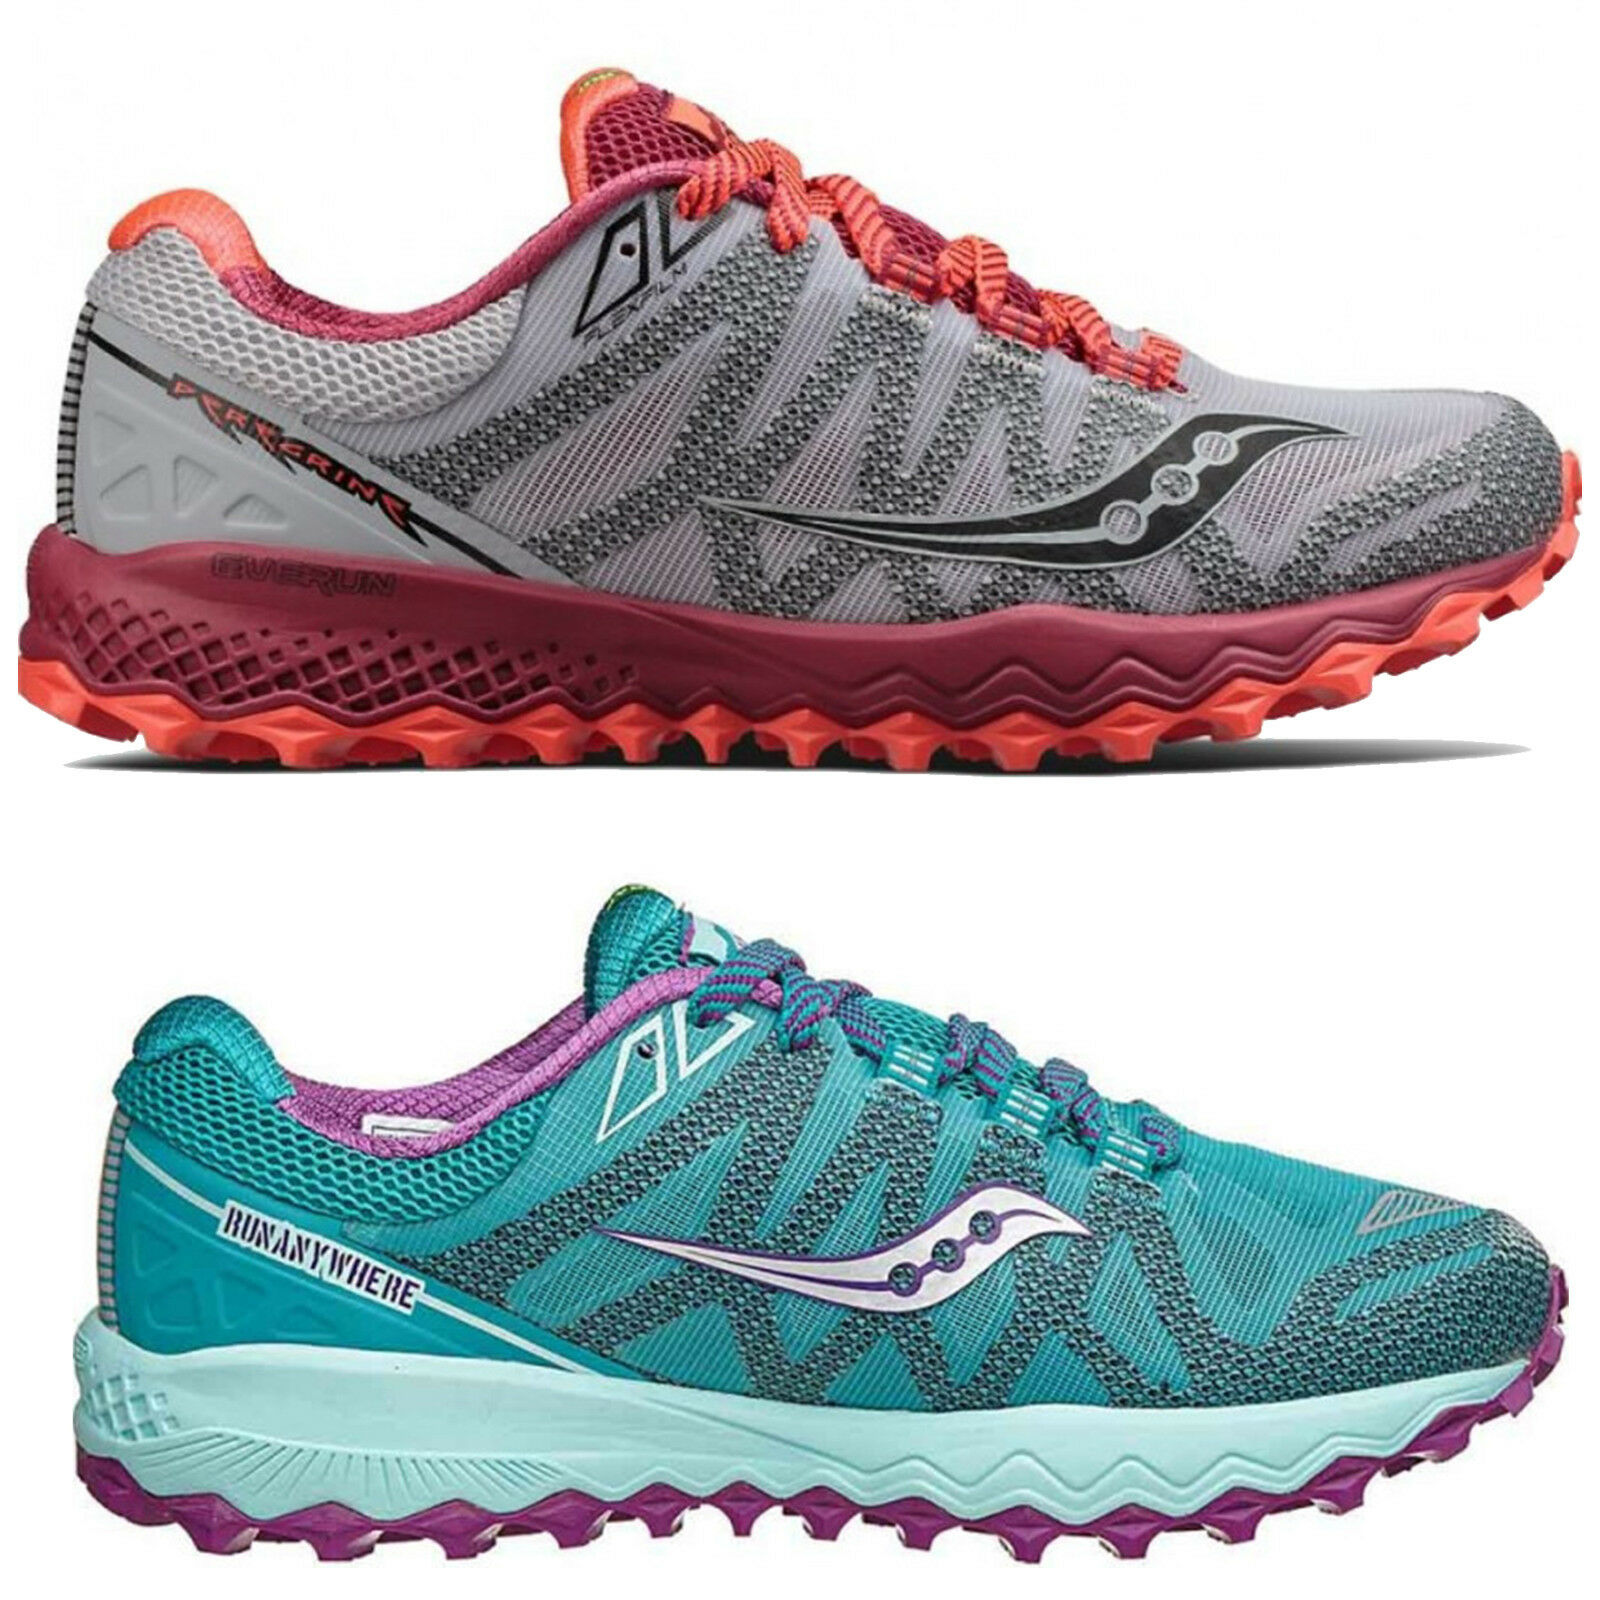 100% authentic c32c7 0a4bd Details about Womens Saucony Peregrine 7 Trail Running Shoes Trainers Sizes  4 5 8 - Medium